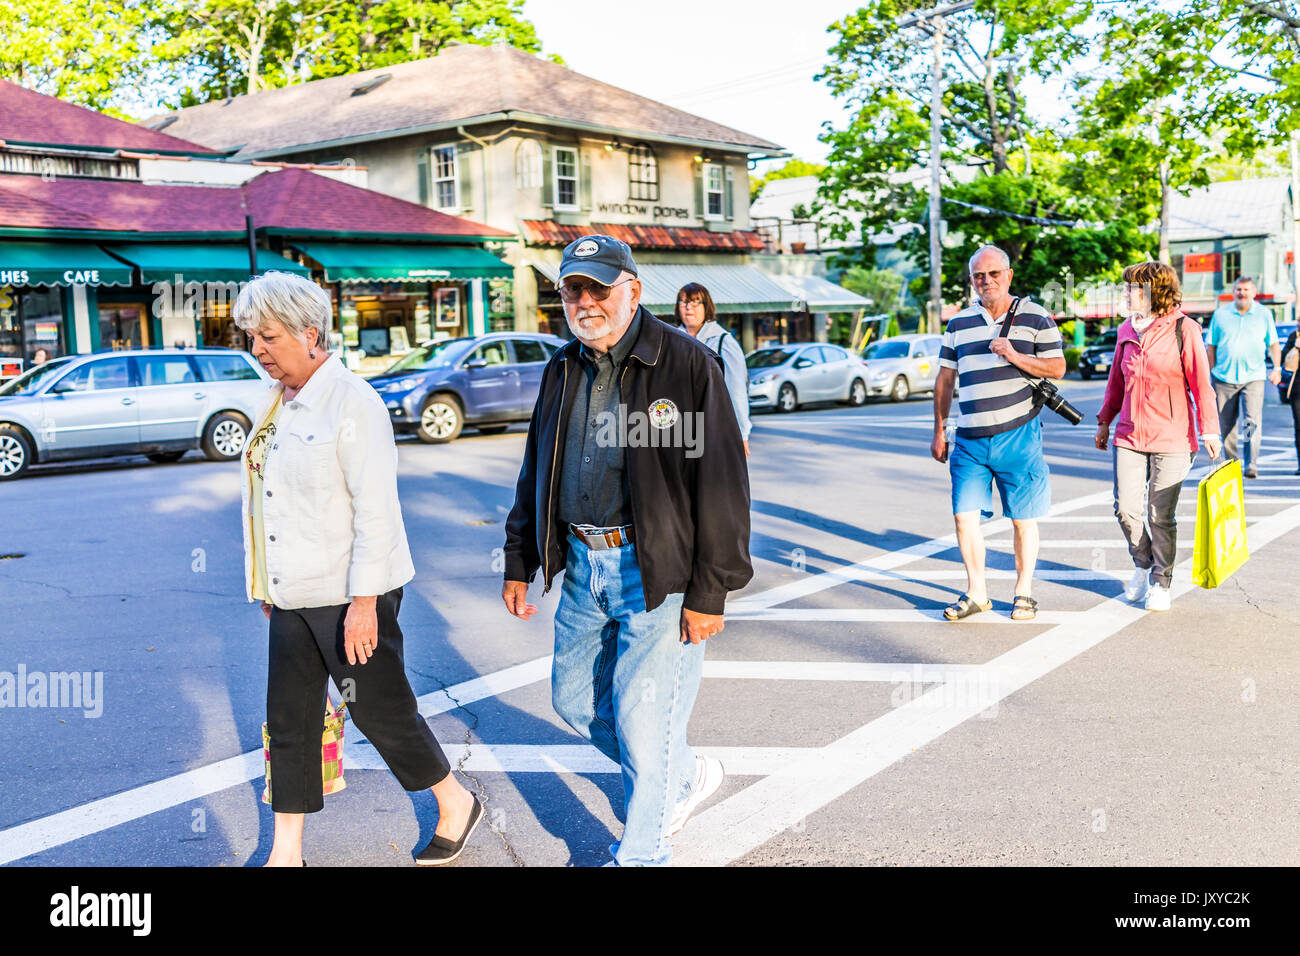 Bar Harbor, USA - June 8, 2017: Happy people crossing sidewalk street in downtown village in summer on main road - Stock Image